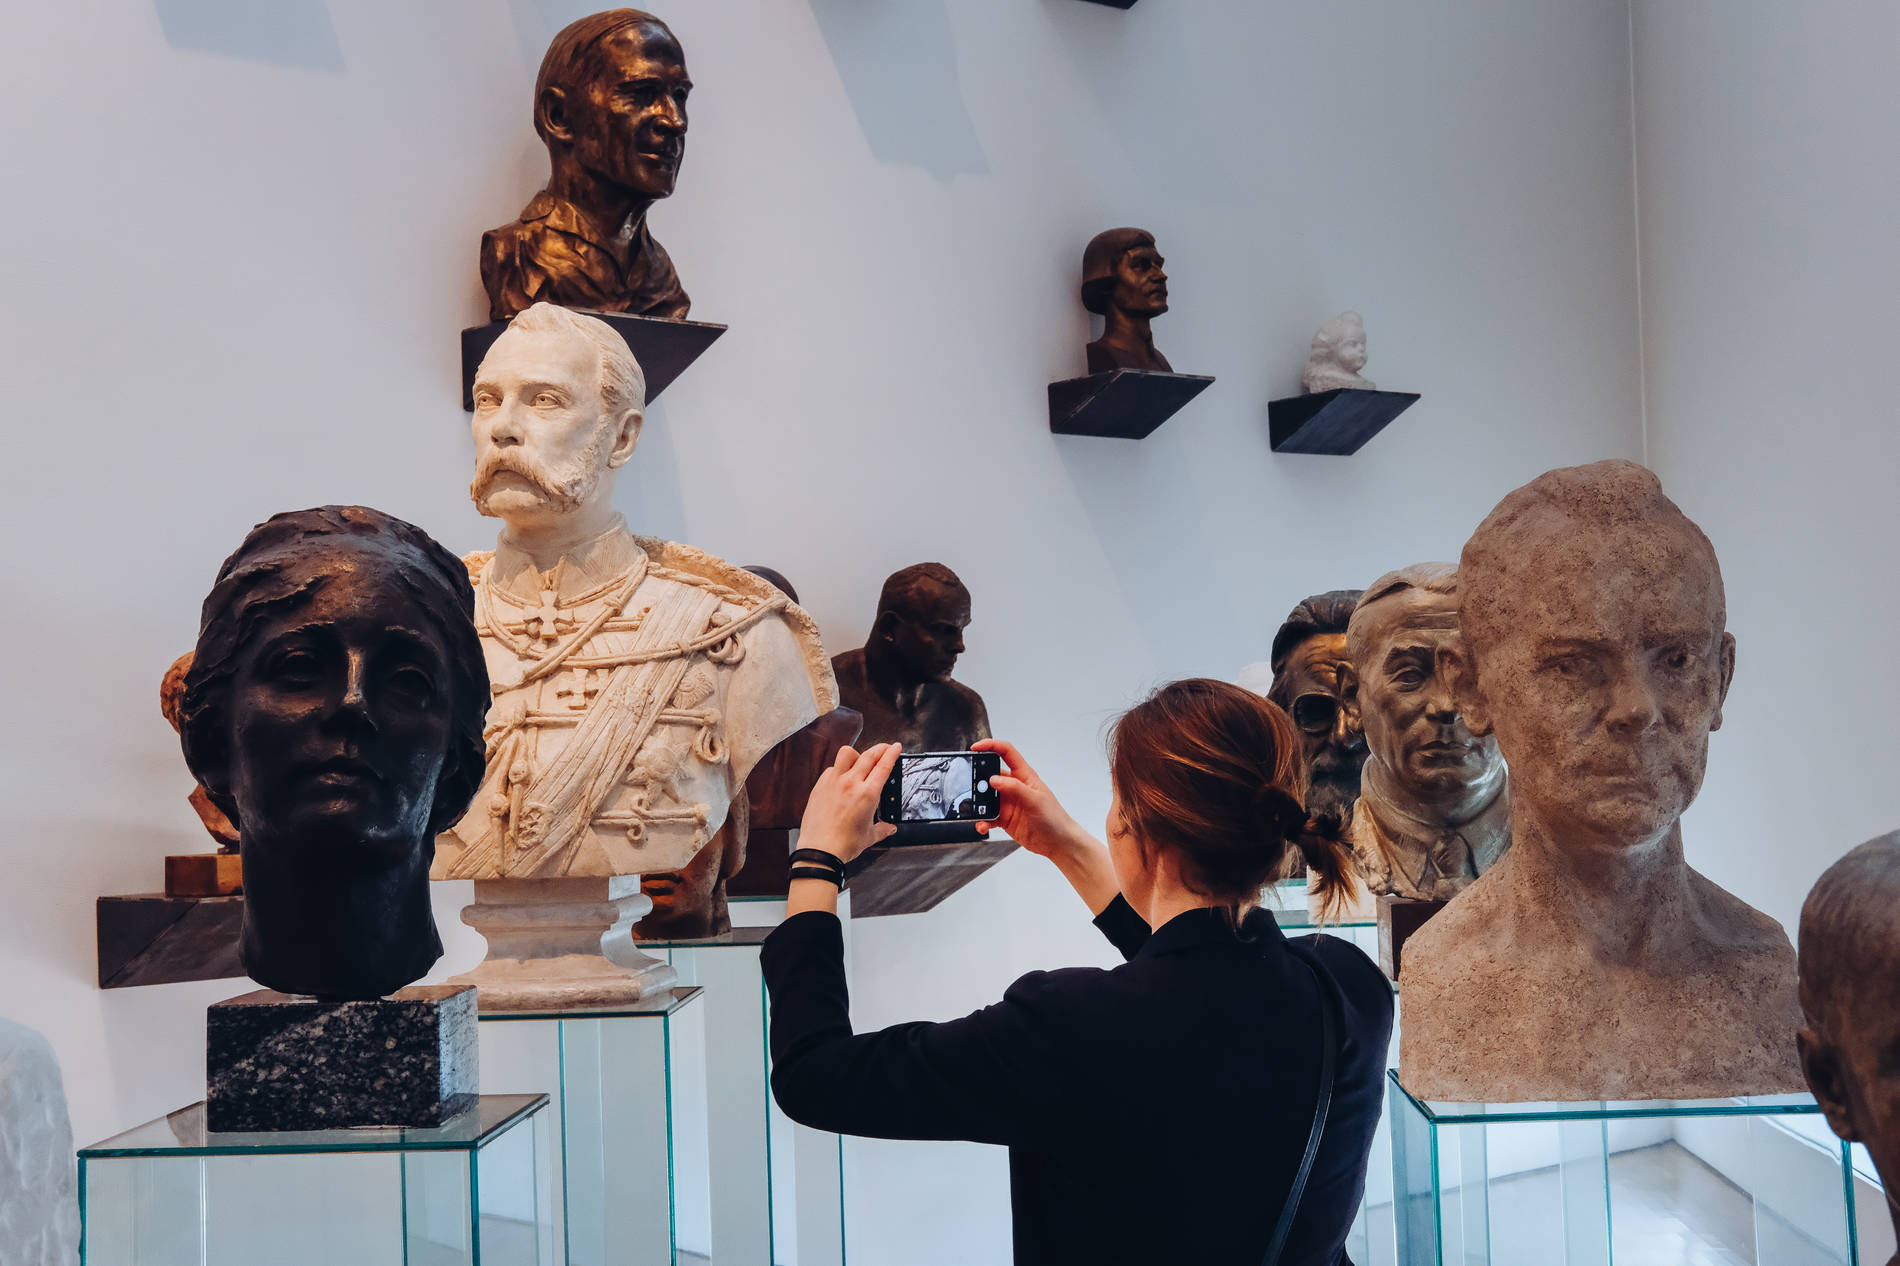 aking photos of sculptures in the KUMU Art Museum in Tallinn, Estonia. Photo by: Kadi-Liis Koppel